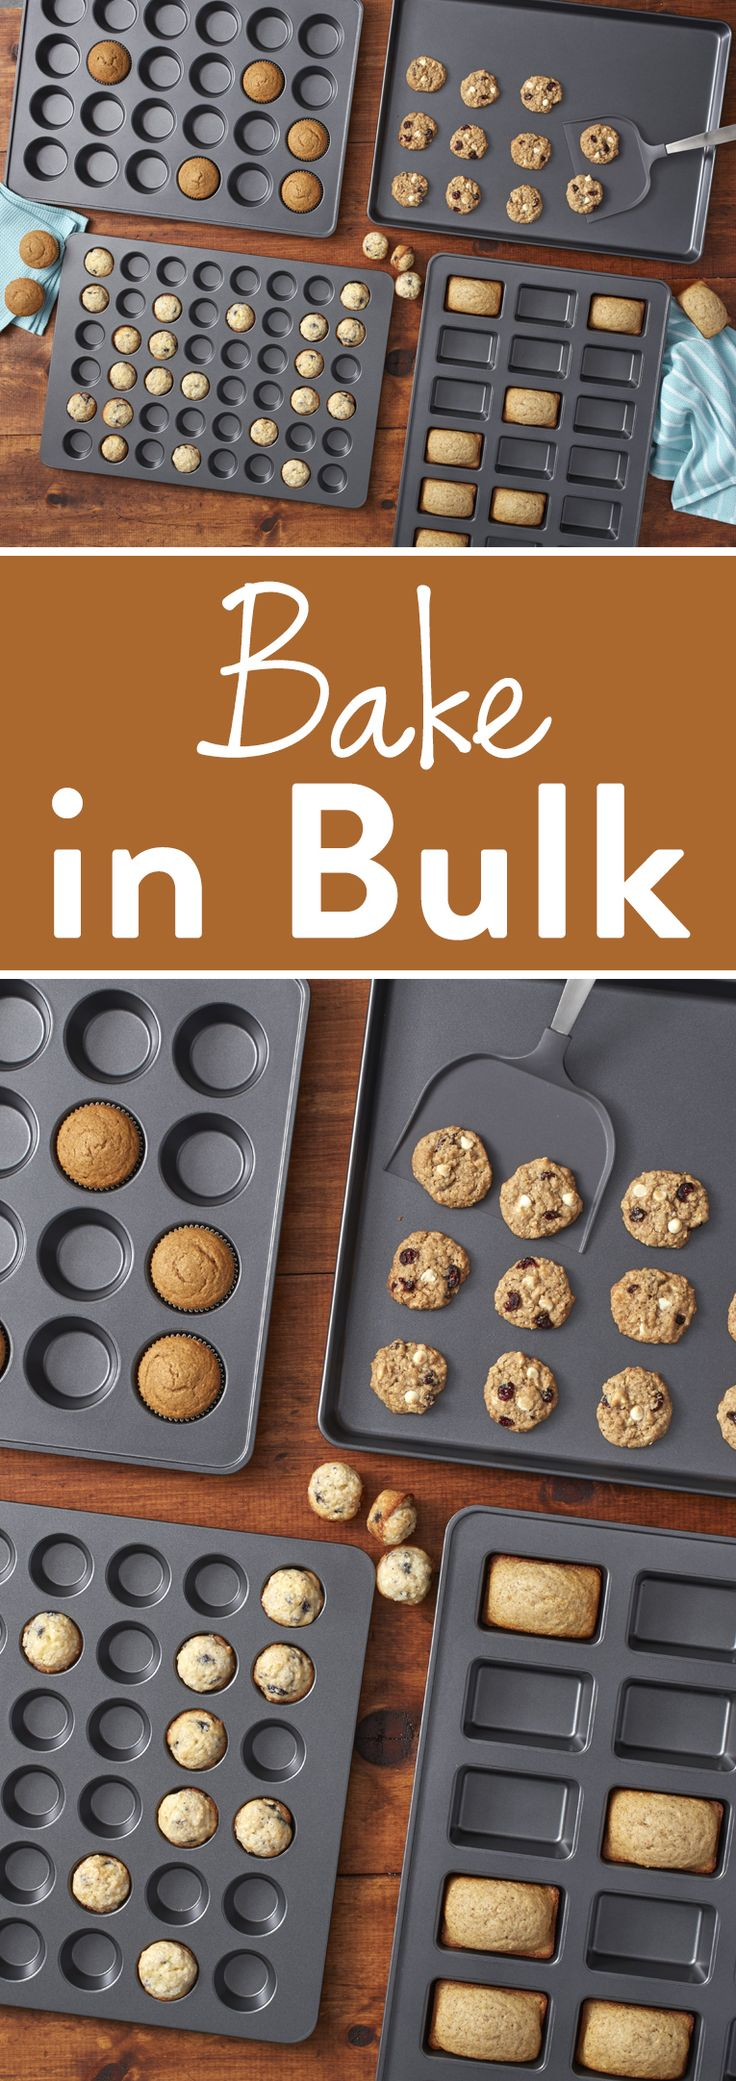 How to Bake in Bulk - Big baking jobs such as parties, bake sales, work luncheons and holidays call for super-sized baking pans! Wilton's mega bakeware oversized pans make efficient use of your time in the kitchen – no more waiting for two rounds of baking! The pans are roughly as wide and deep as most ovens, so they'll maximize your oven space. Plus, the non-stick coating on these pans makes cleaning up a breeze.